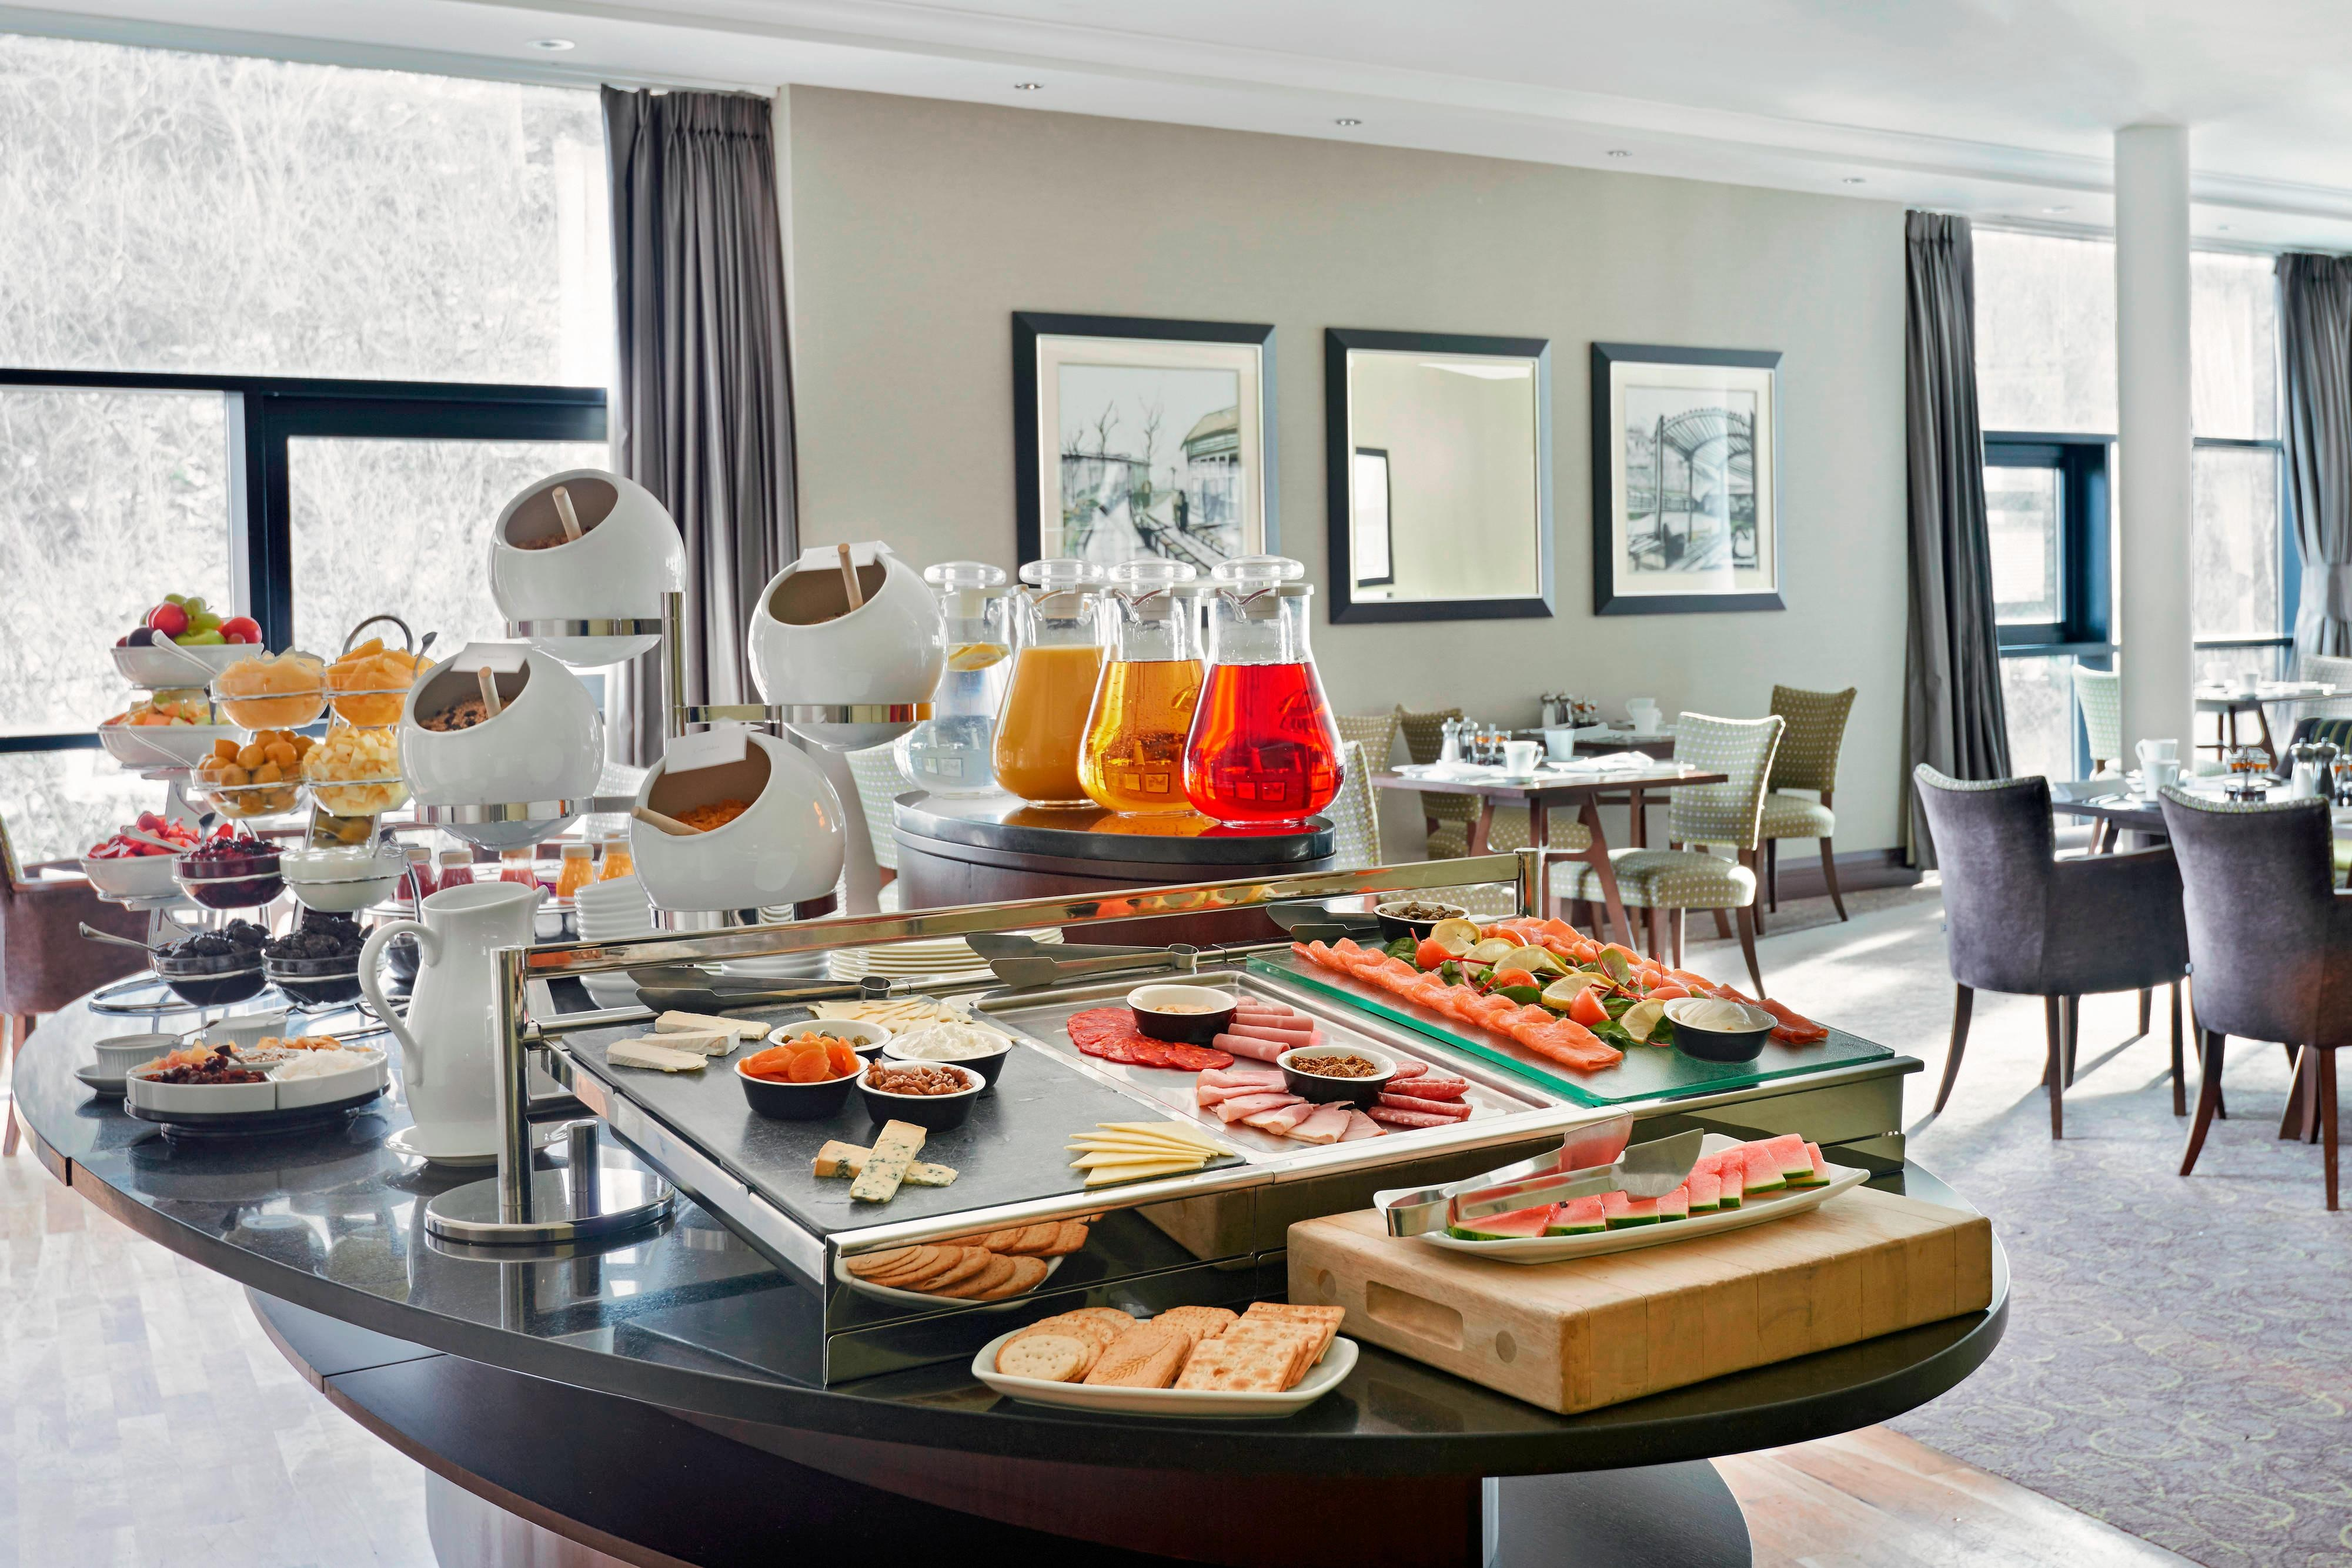 Observatory Restaurant - Breakfast Buffet